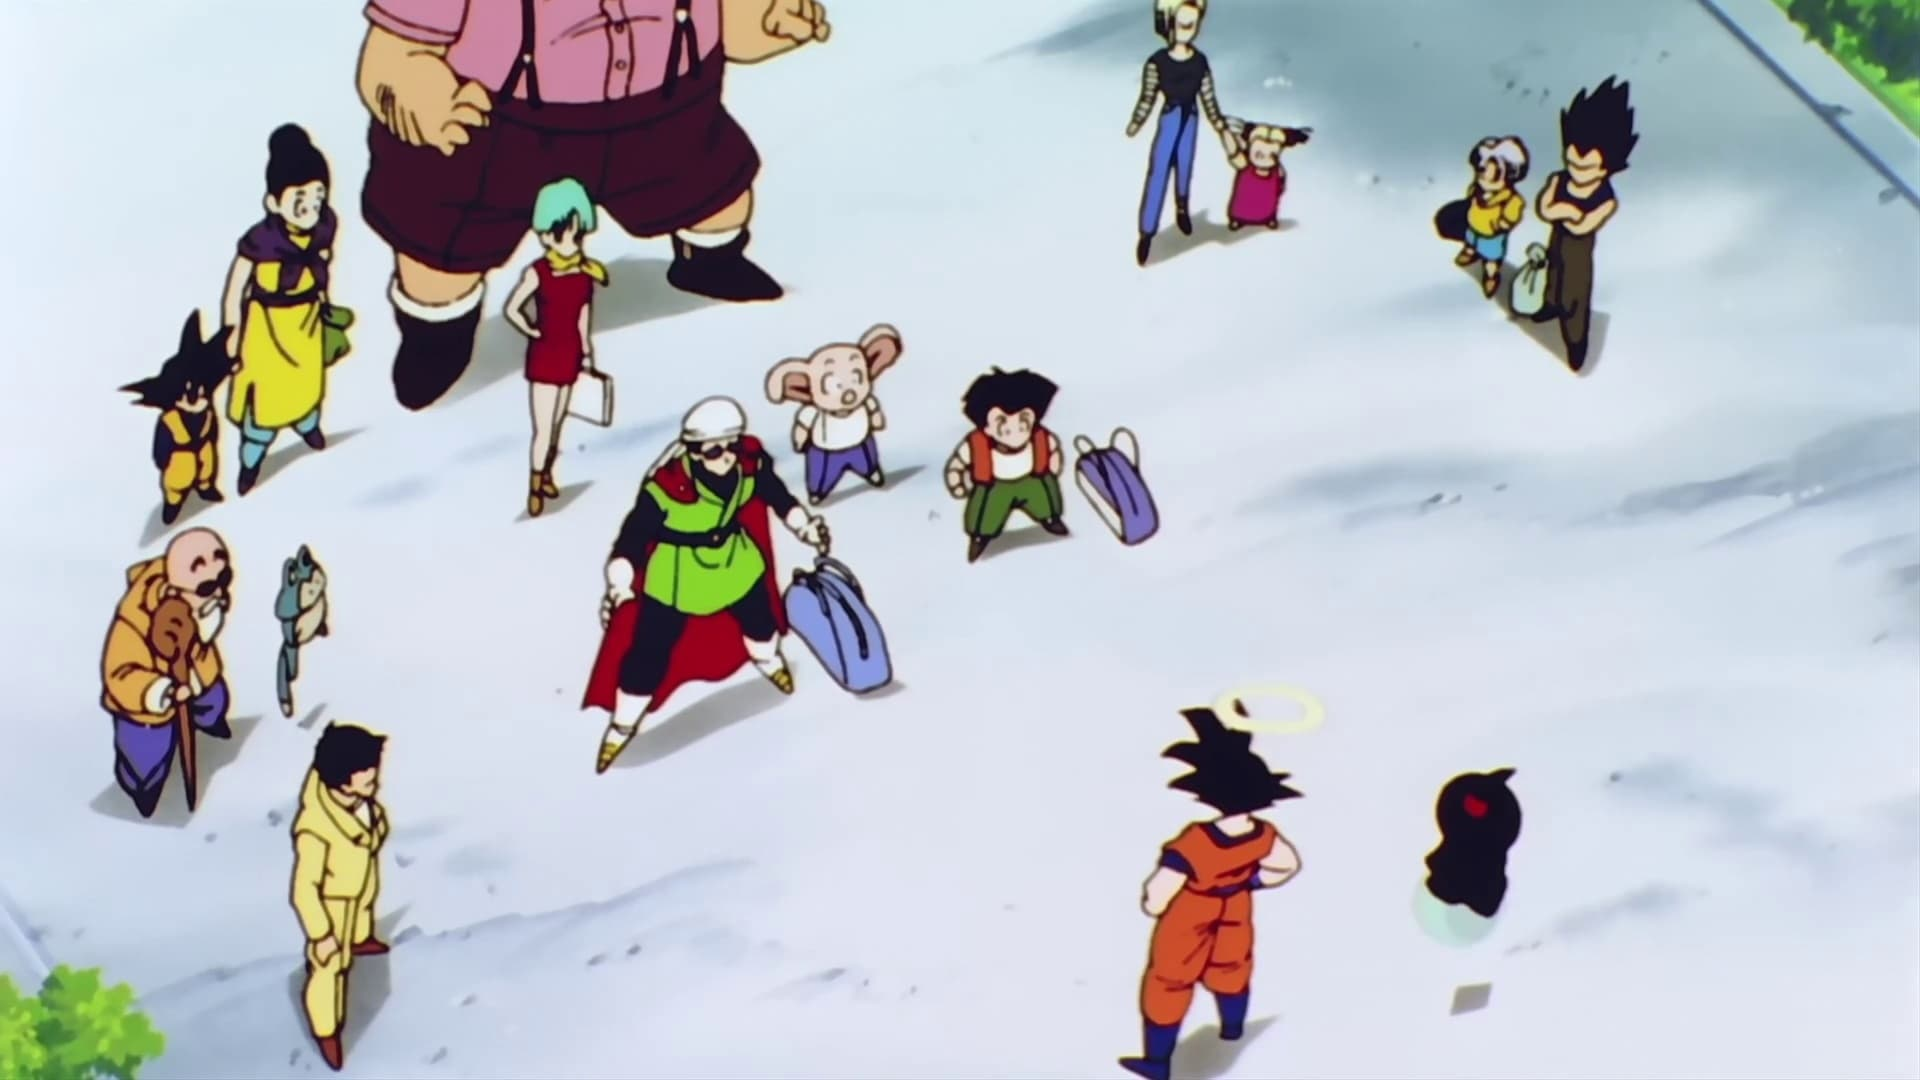 Dragon Ball Z Kai Season 5 :Episode 4  The Dragon Team Fully Assembled! Goku Has Come Back!